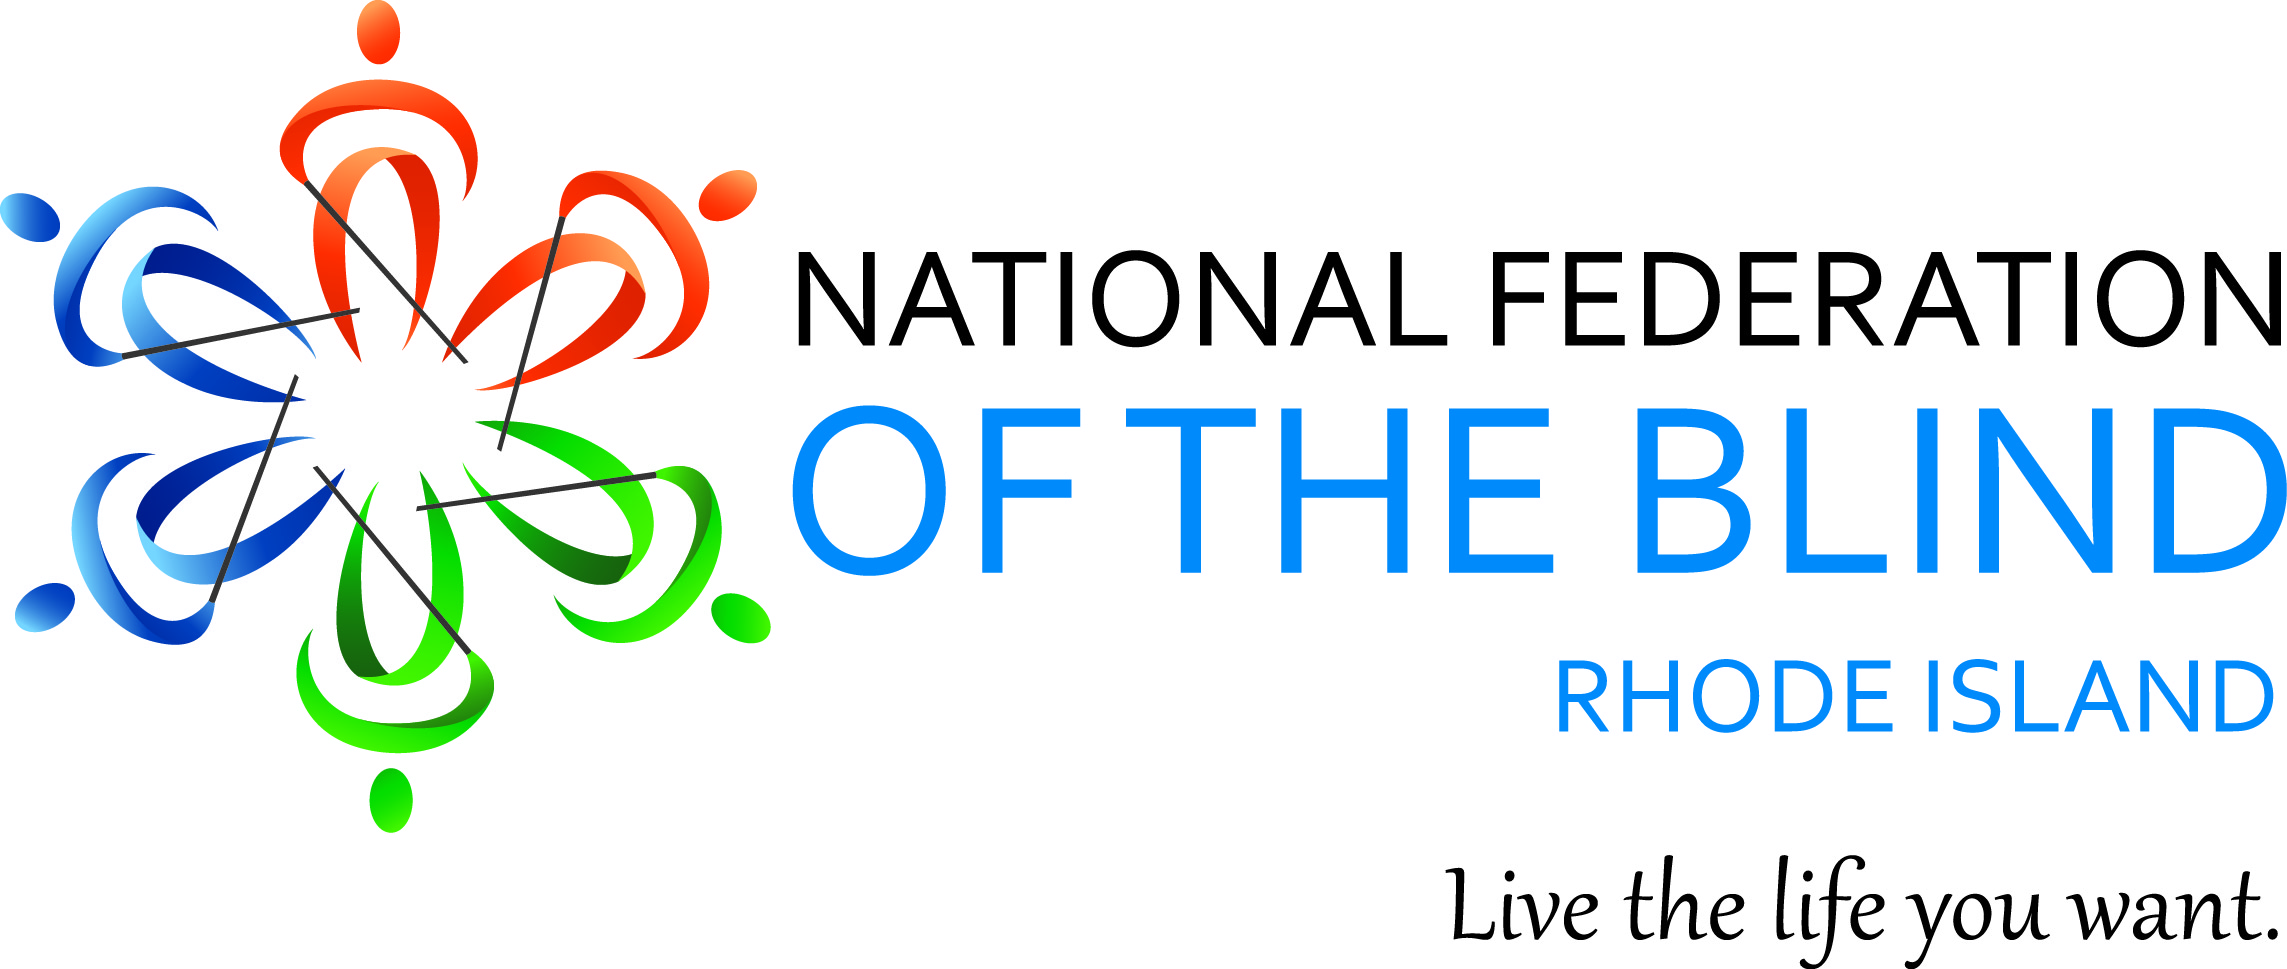 National Federation of the Blind of Rhode Island Logo.